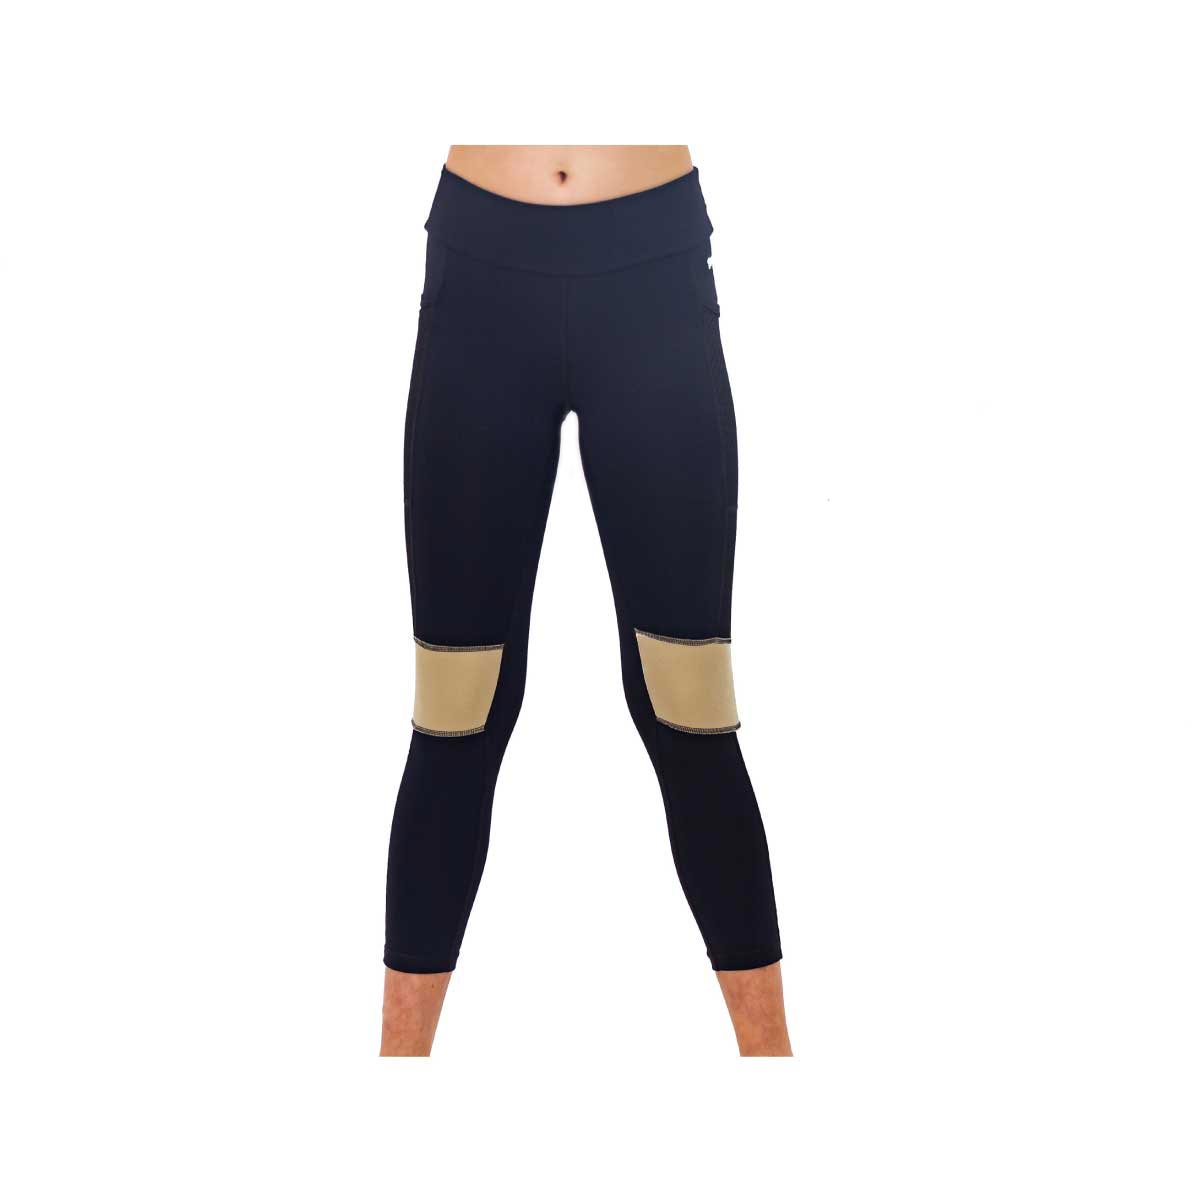 GIRL'S ENERGY GOLD LEGGINGS